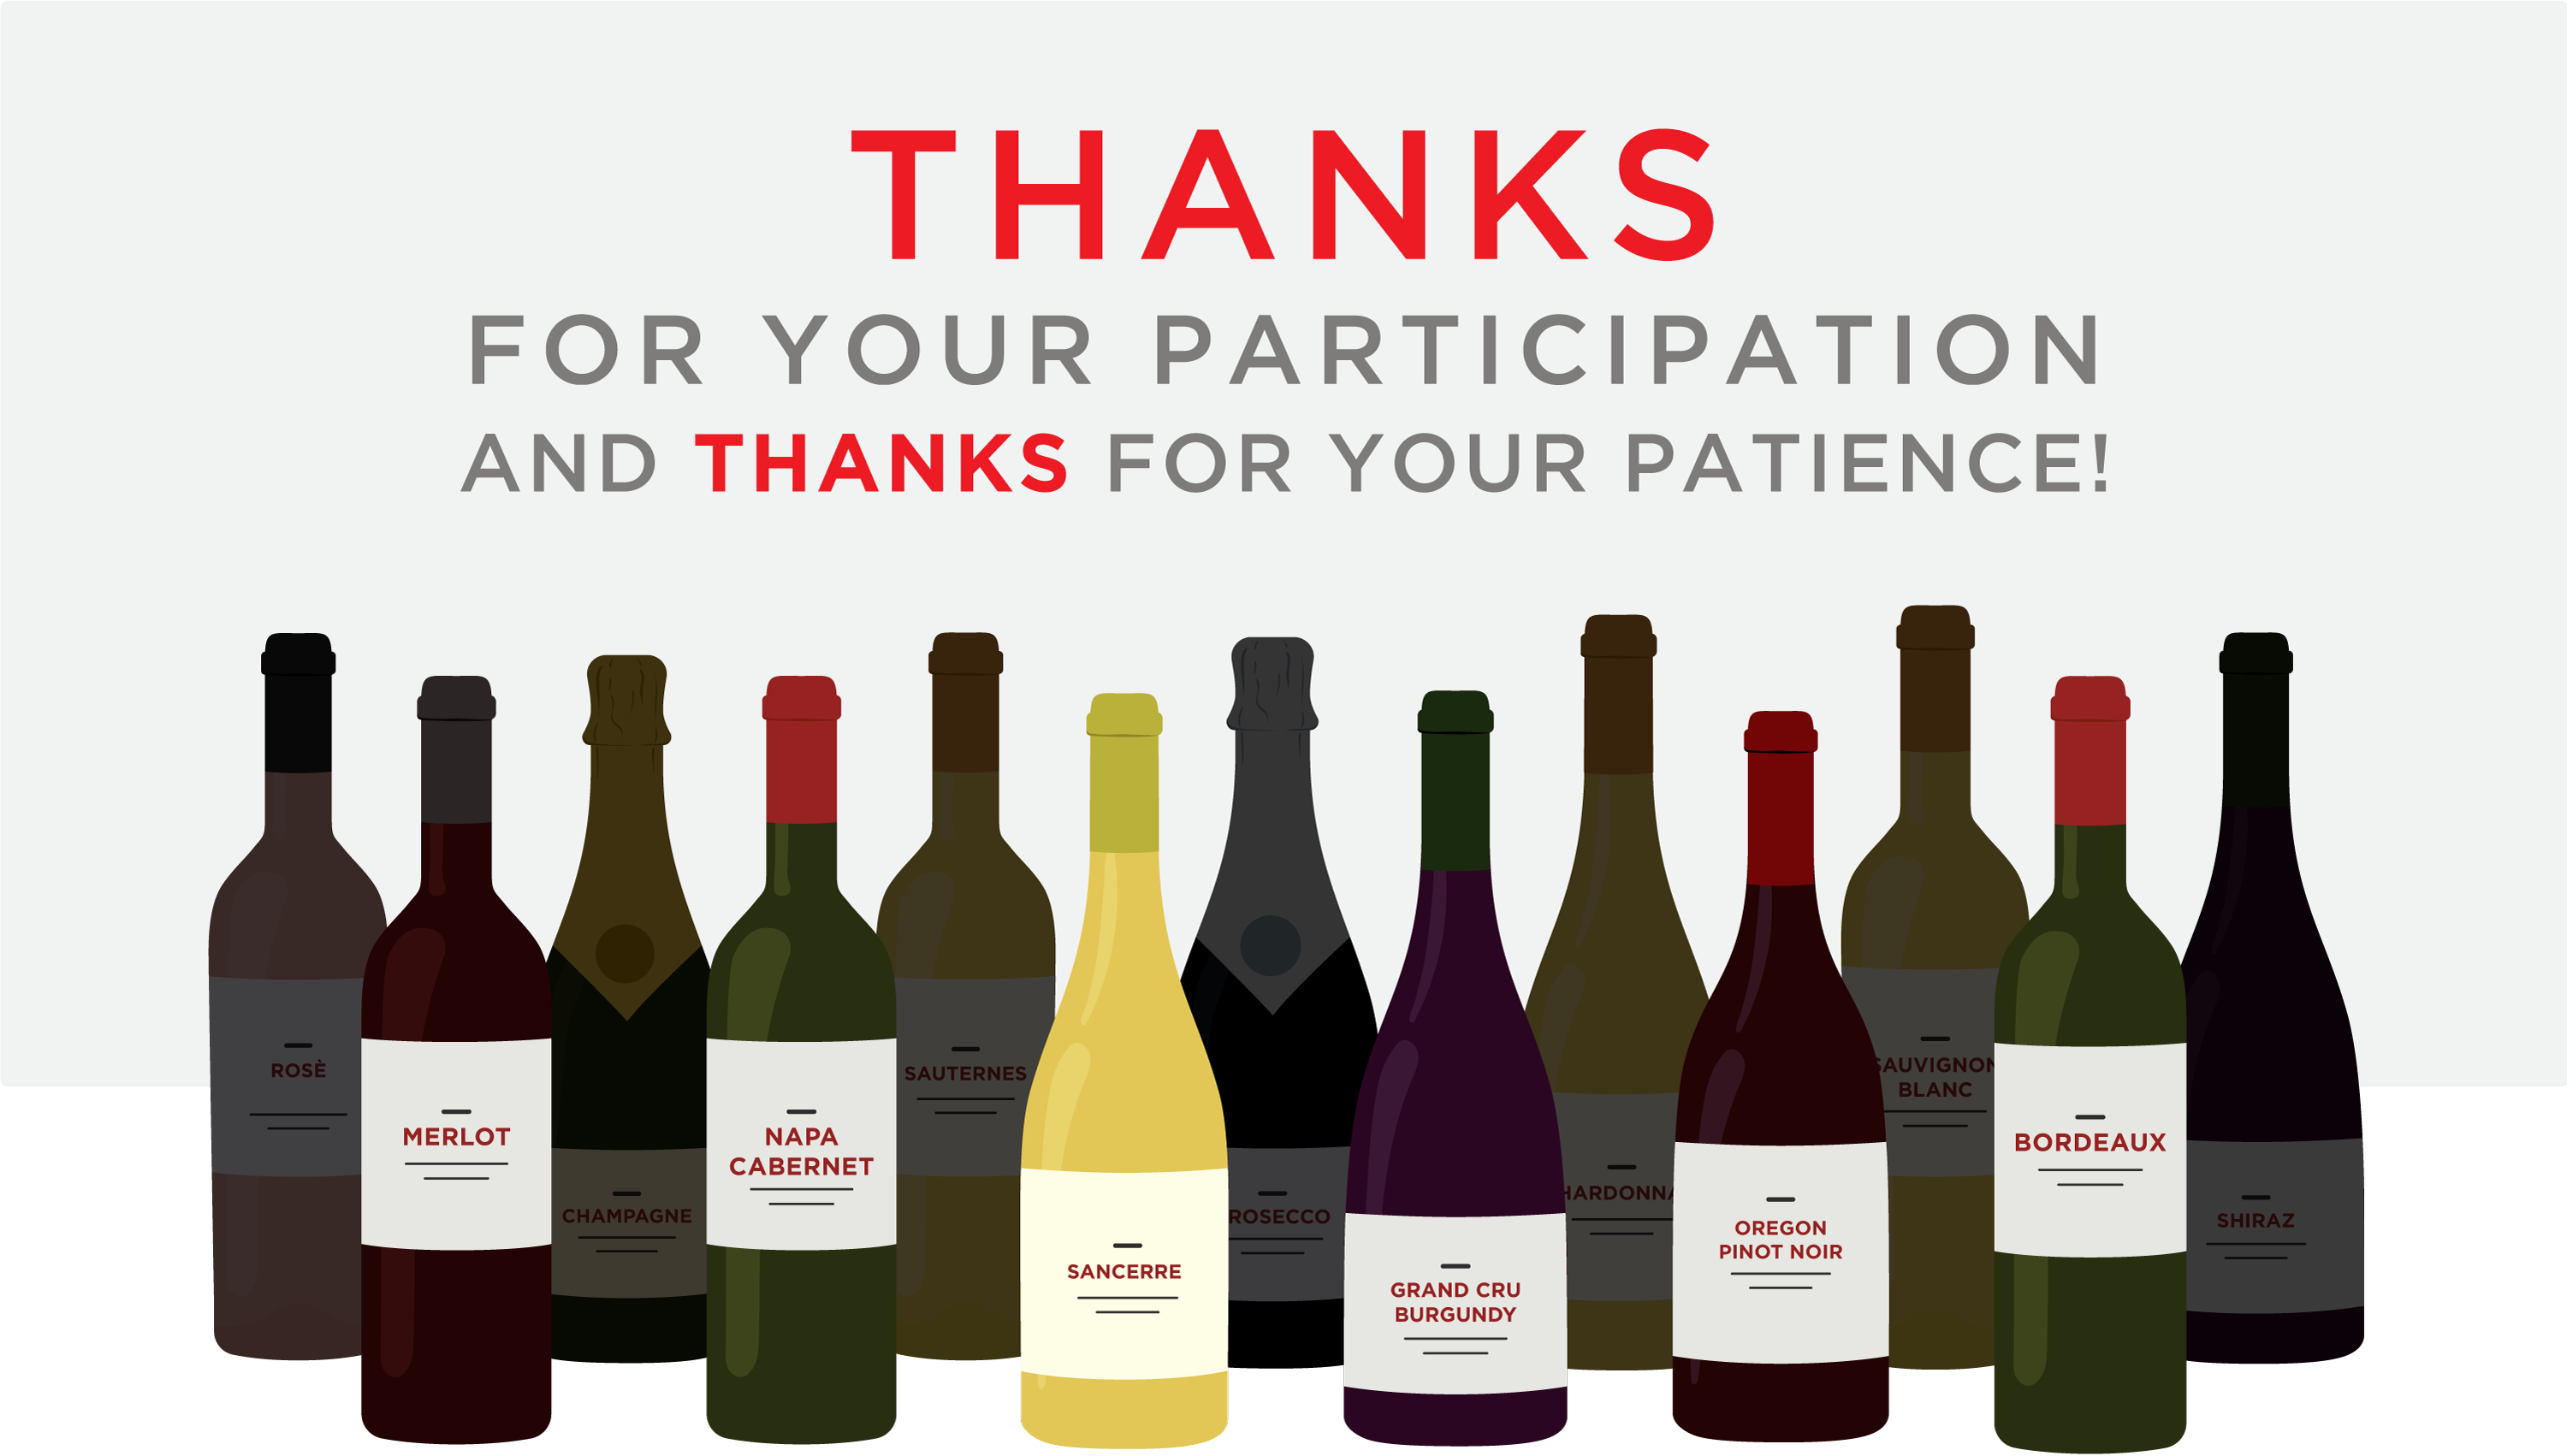 Thanks for your participation and thanks for your patience.